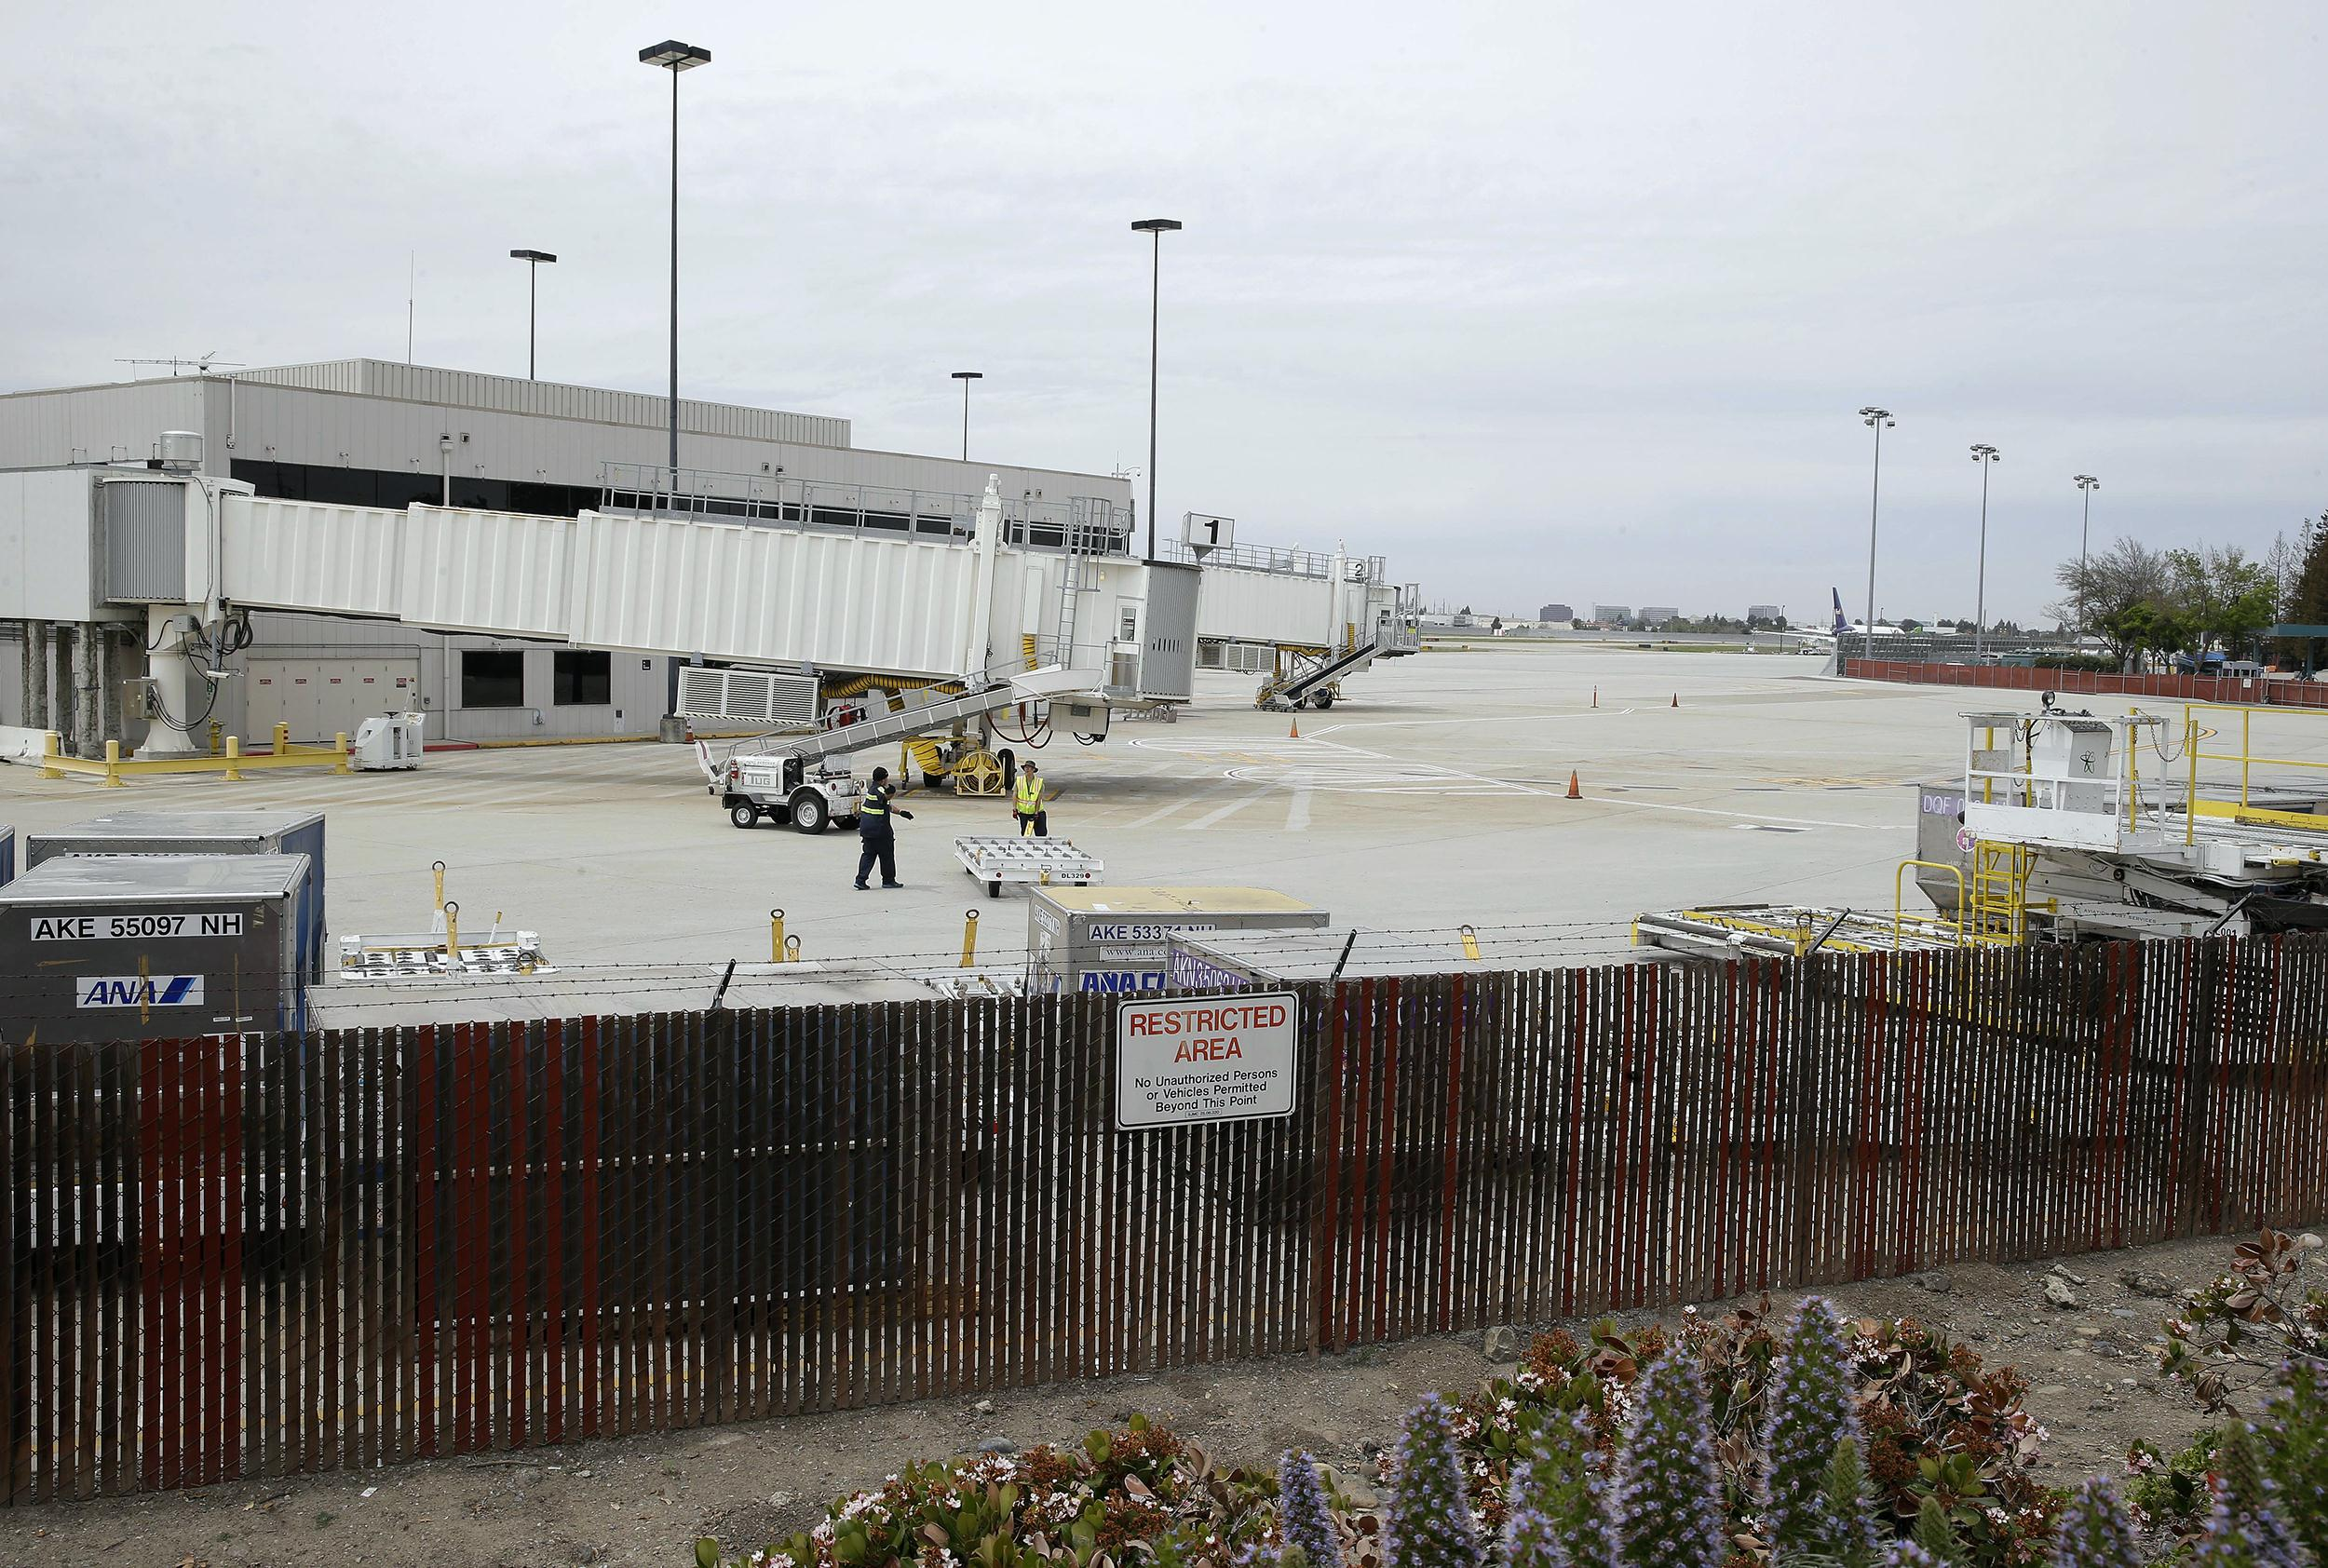 Image:  Workers move equipment near gates used by Hawaiian Airlines at Terminal A of Mineta San Jose International Airport  in San Jose, Calif where  a 16-year-old boy scrambled over a fence at the airport, crossed a tarmac and climbed i